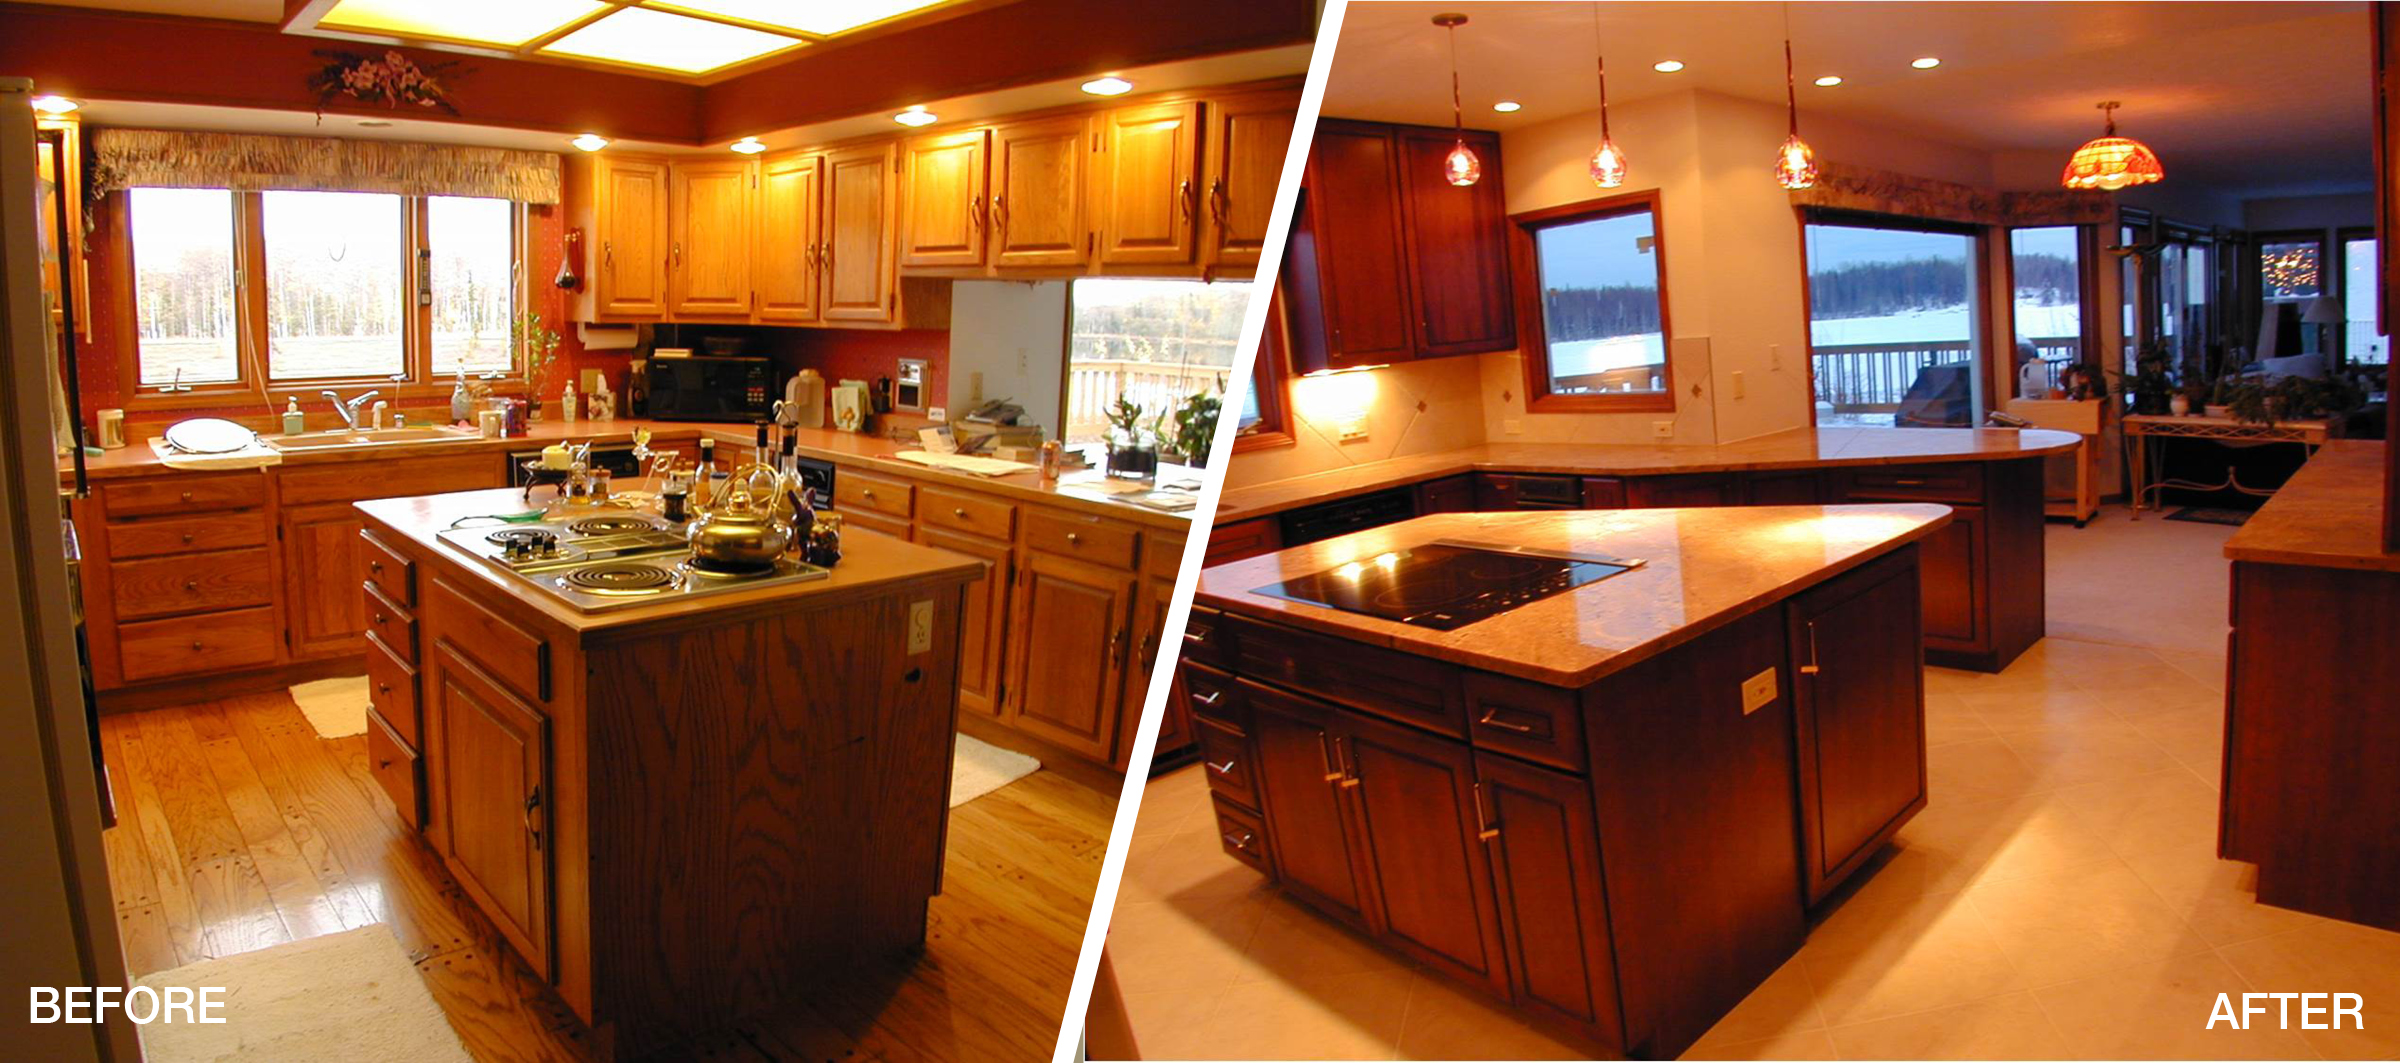 Kitchen Remodel Before&After